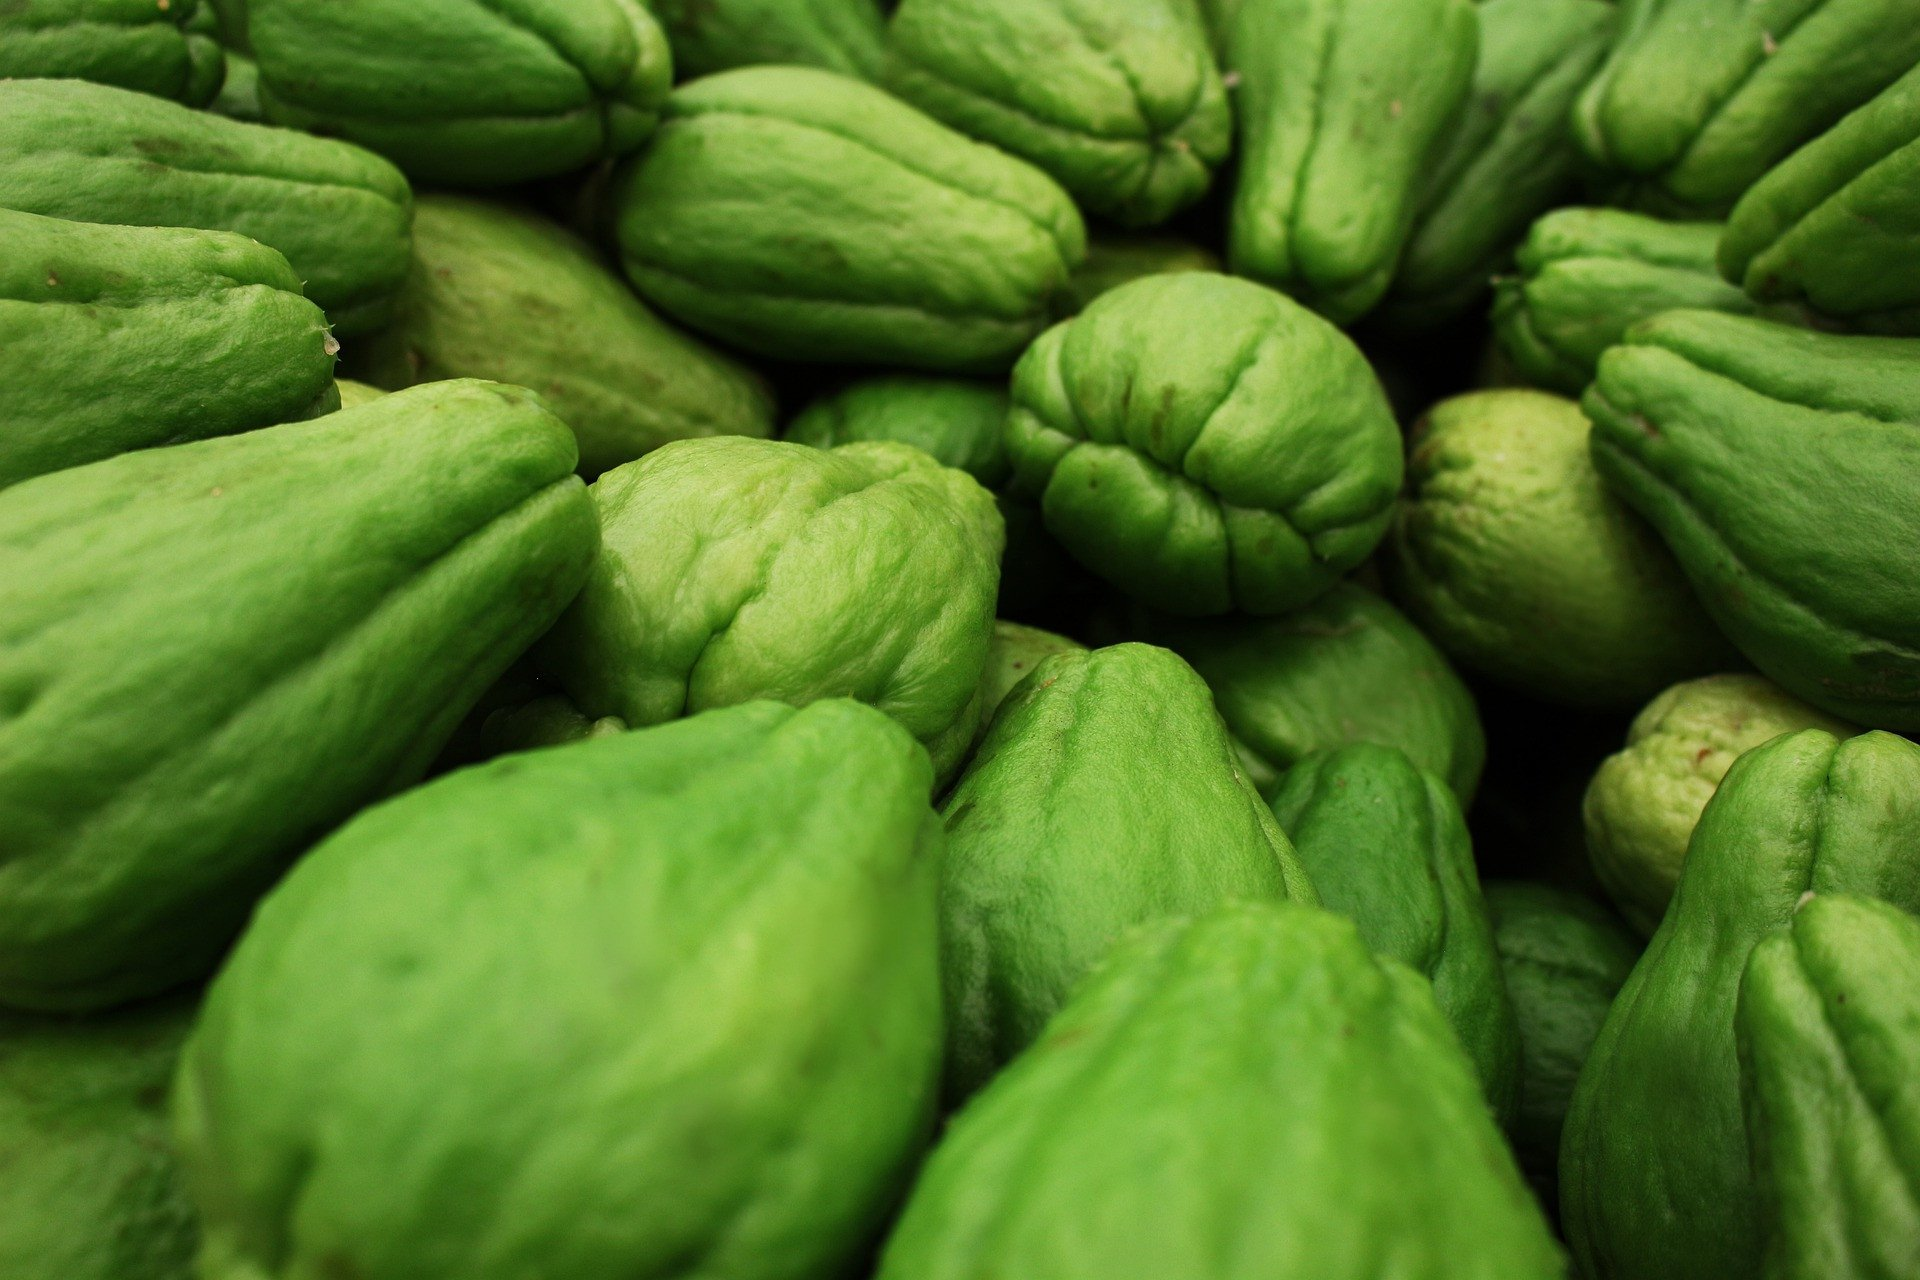 Effective Overcome Uric Acid, These are 6 Benefits of Chayote for the Body - JPNN.com